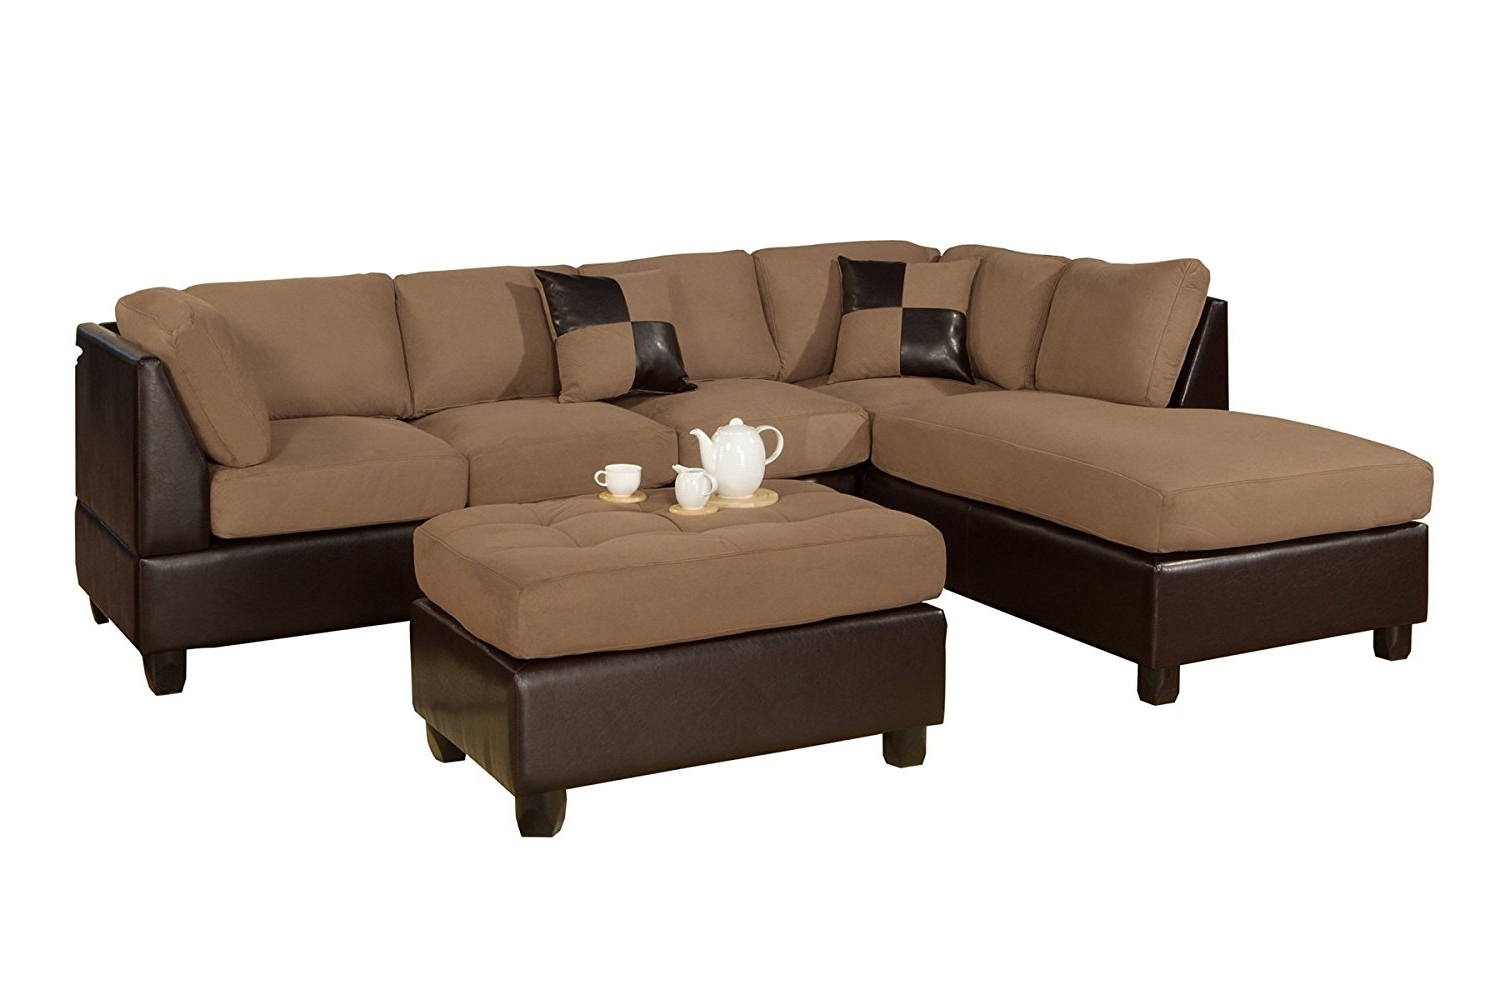 Sectional Sofas Under 1500 For Most Current Amazon: Bobkona Hungtinton Microfiber/faux Leather 3 Piece (View 9 of 15)